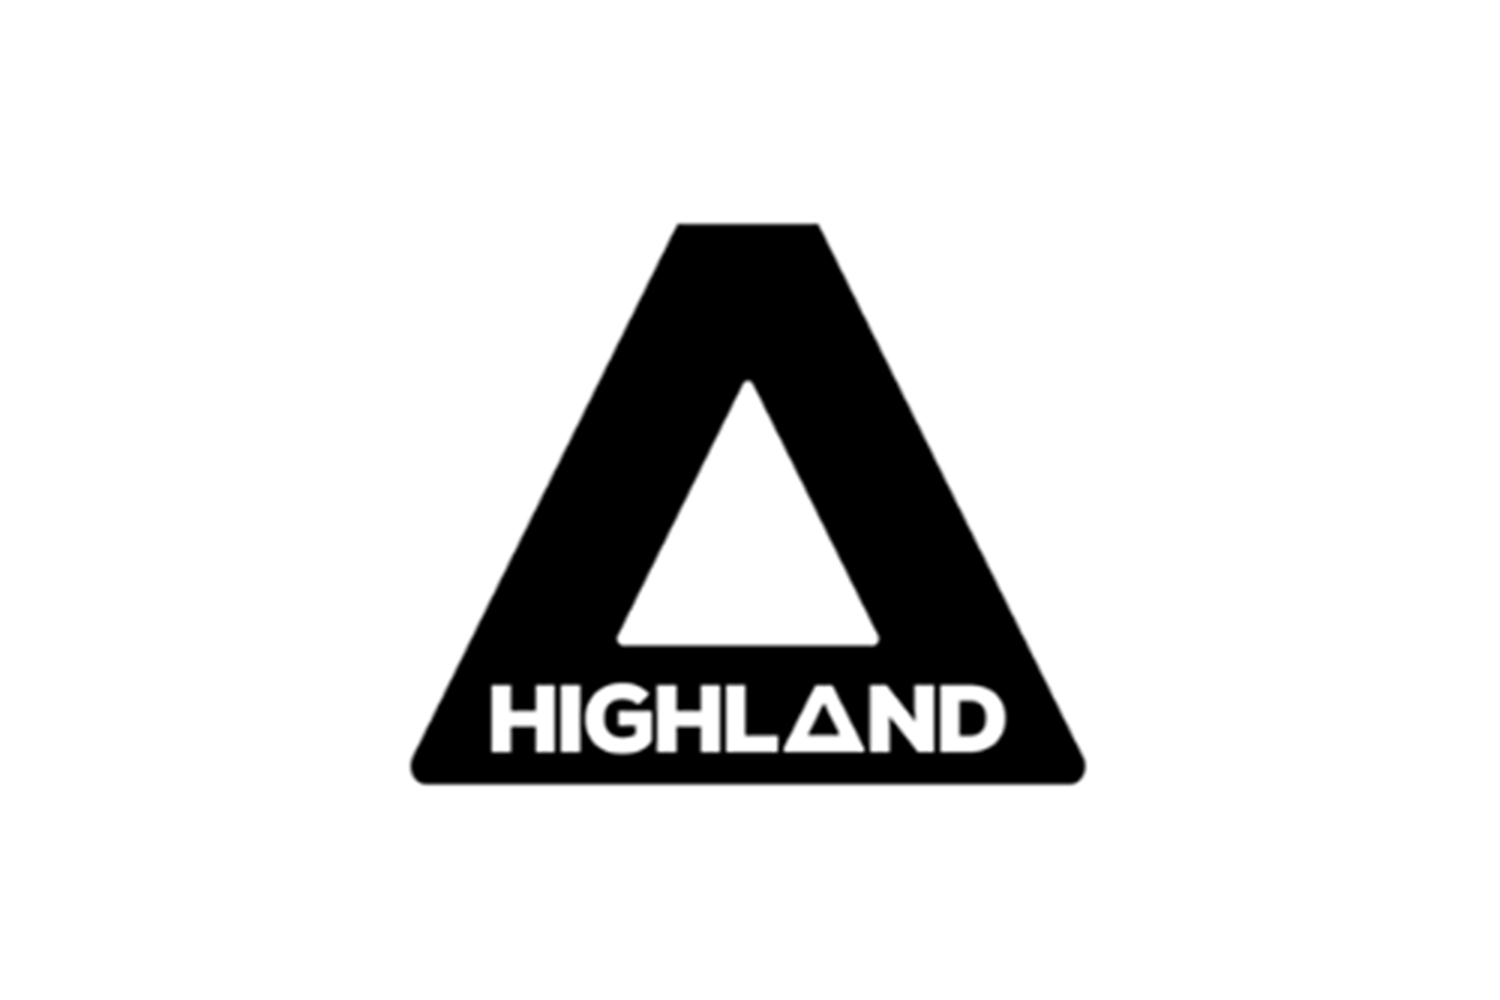 the green organic highland